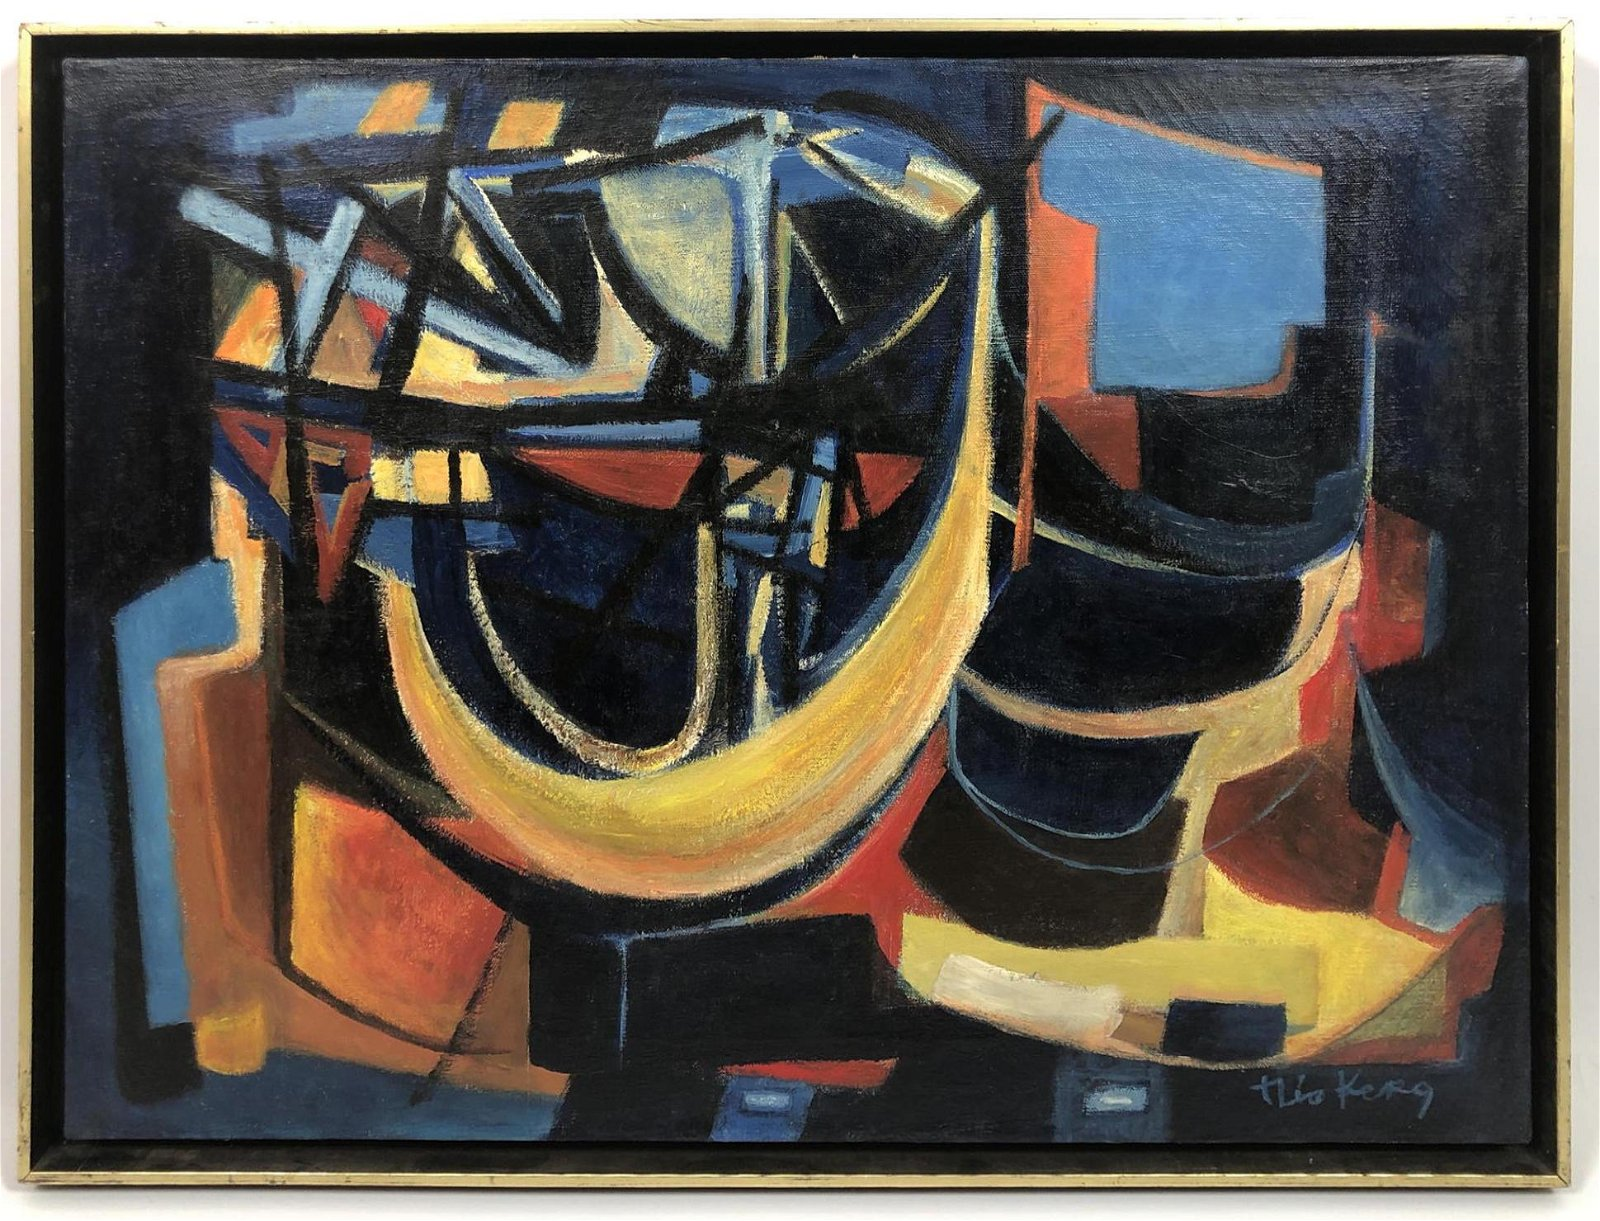 THEO KERG Modernist Abstract Oil Painting.